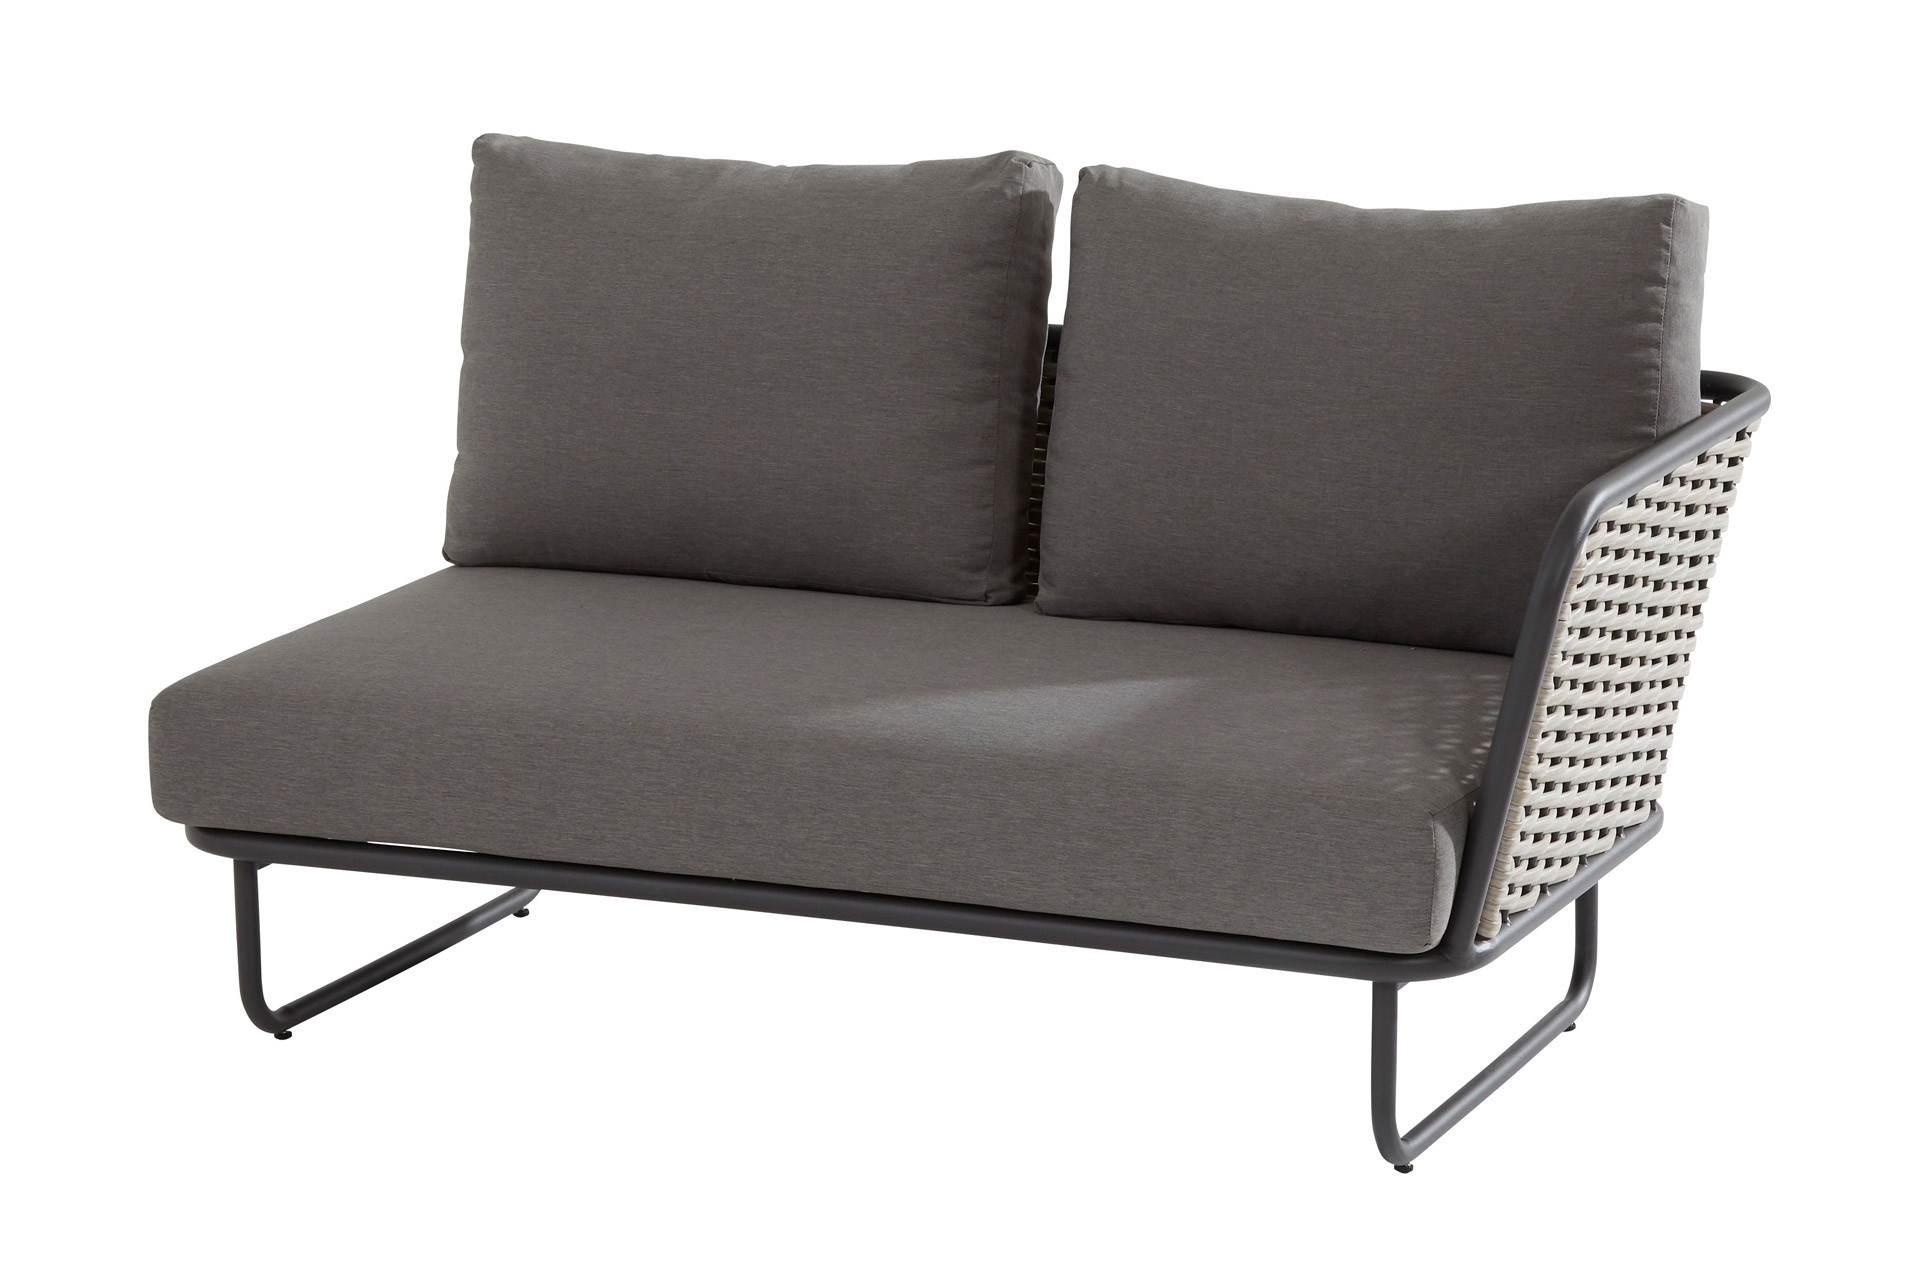 Bo 2 Seater left arm with 3 cushions